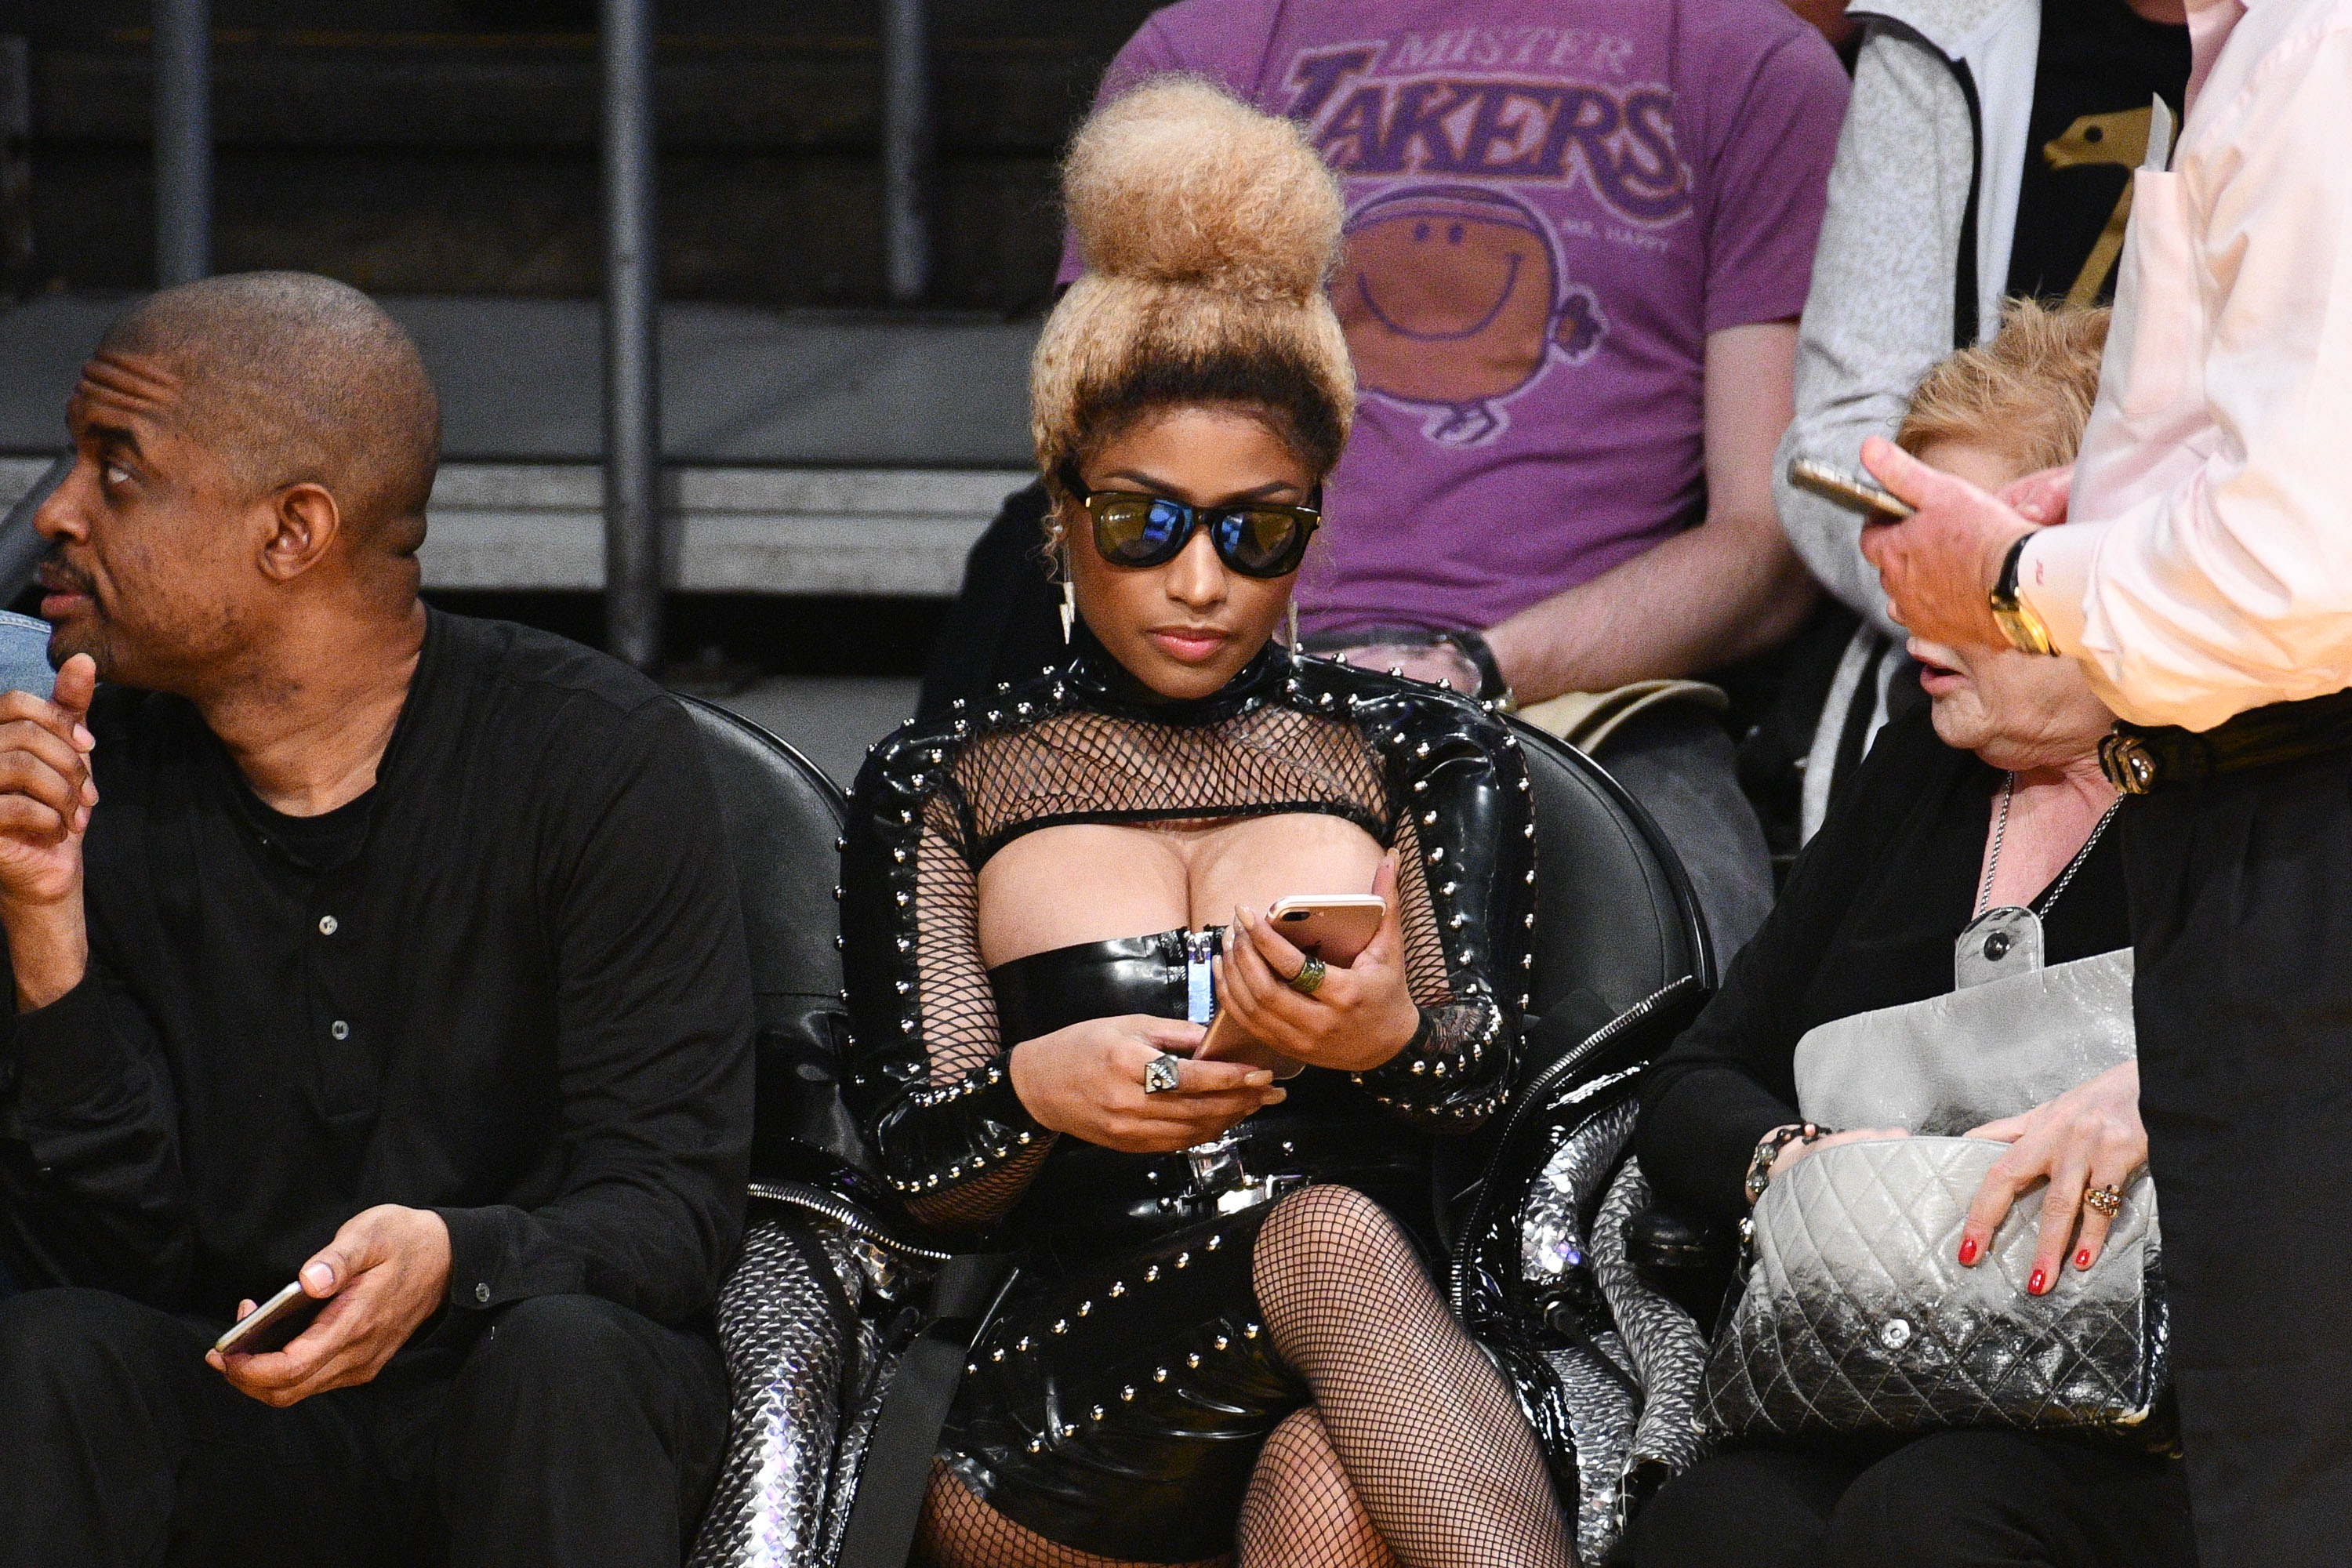 e17d777fe640e6 Nicki Minaj Comes Out Of Hiding Front Row At The Lakers Game   Power ...